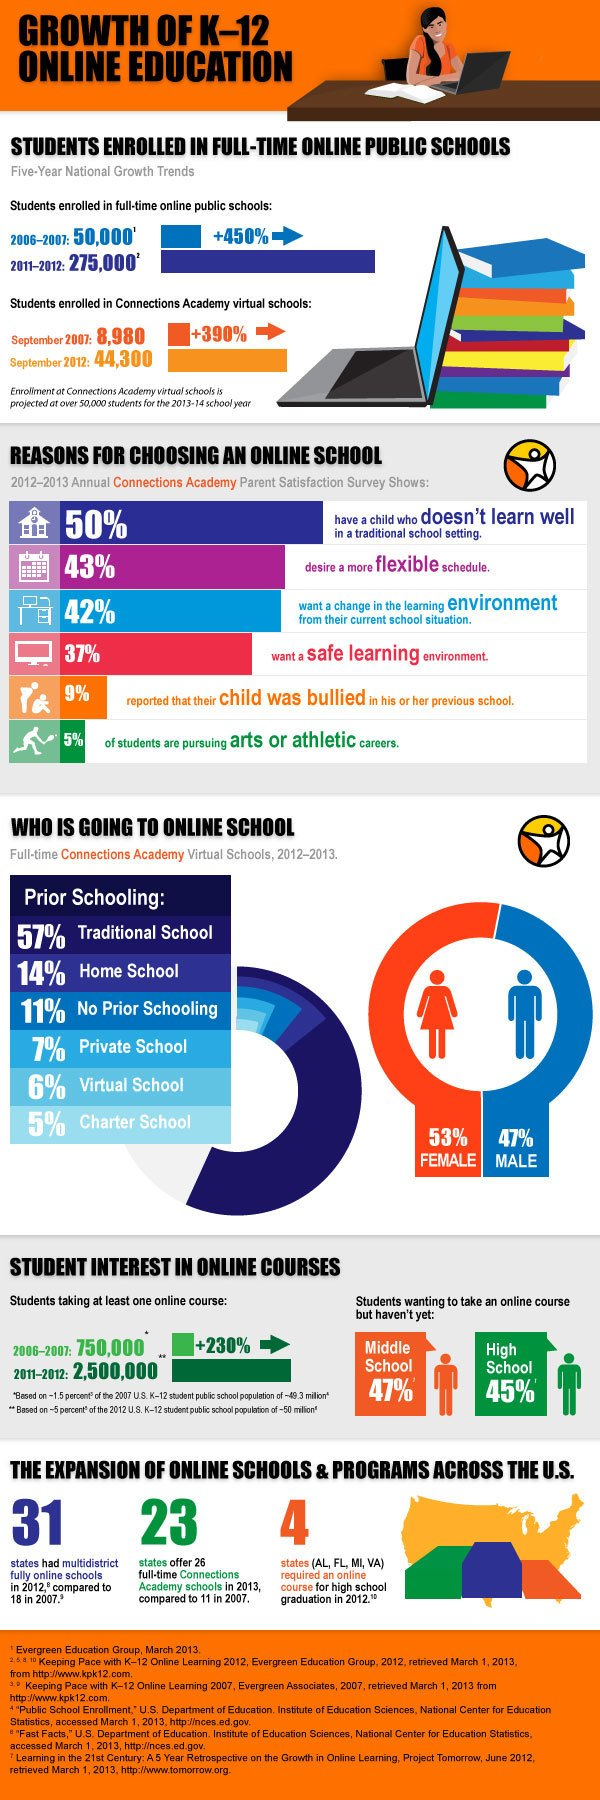 Growth-of-K-12-Online-Education-Infographic